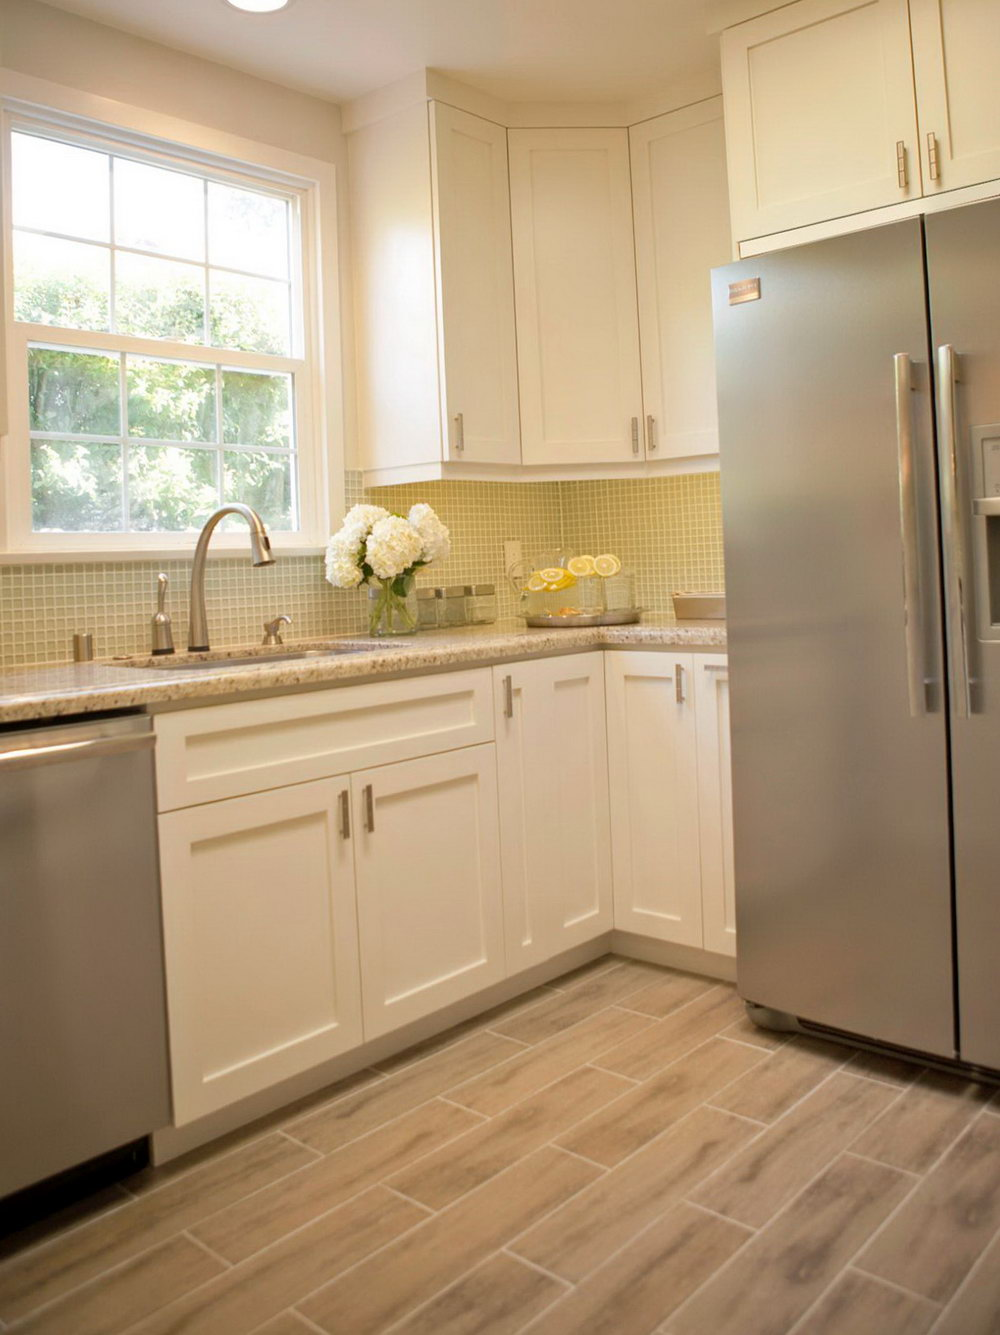 White Kitchen Cabinets Tile Floor